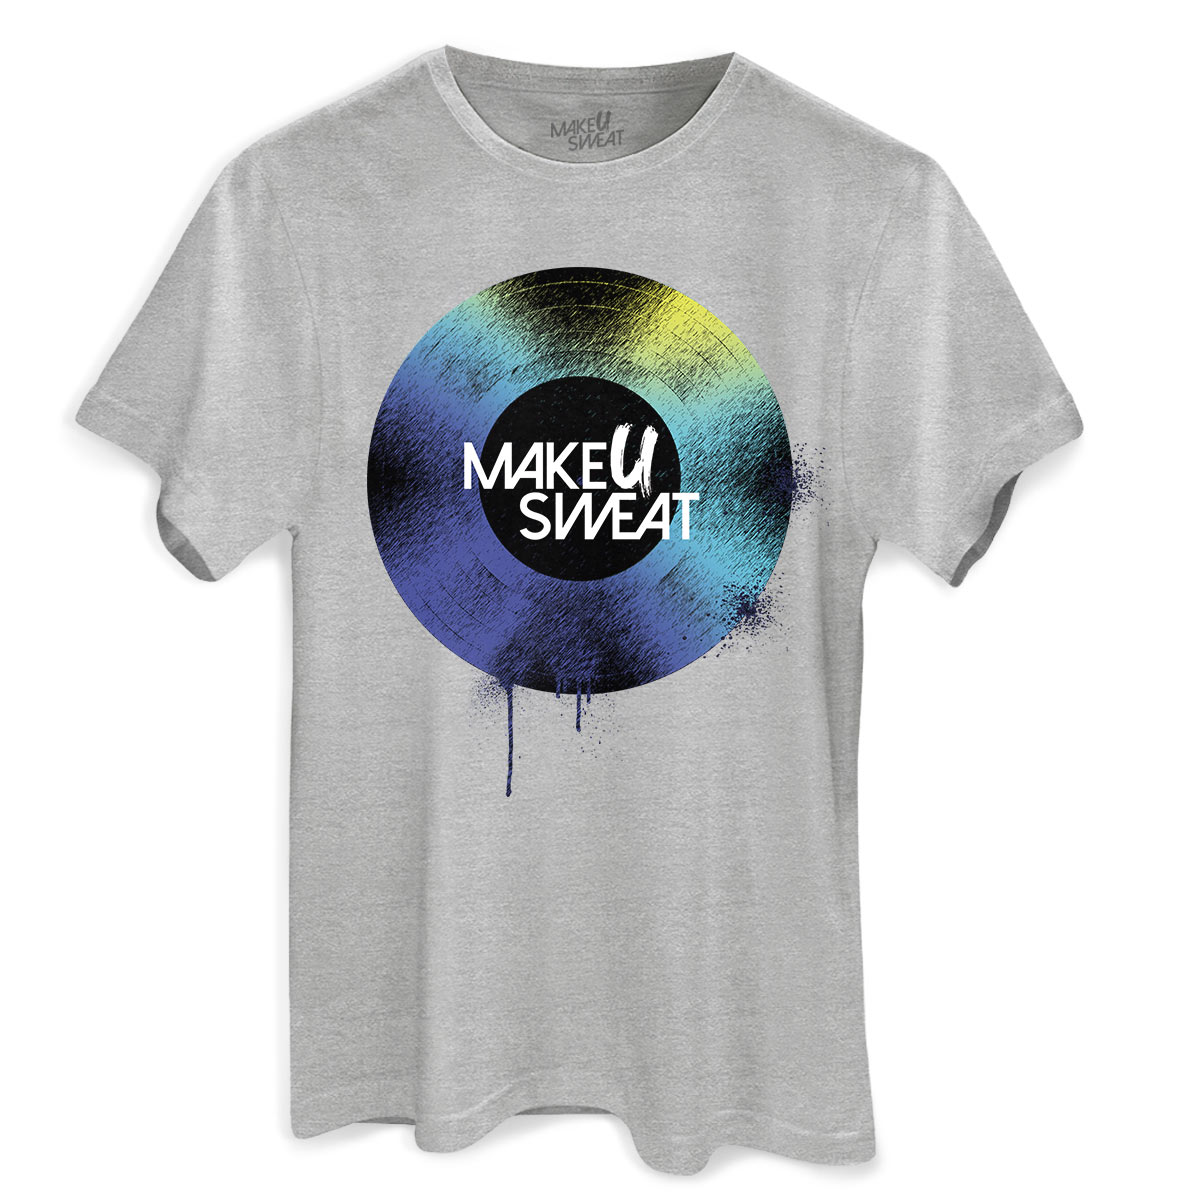 Camiseta Masculina Make U Sweat Disco